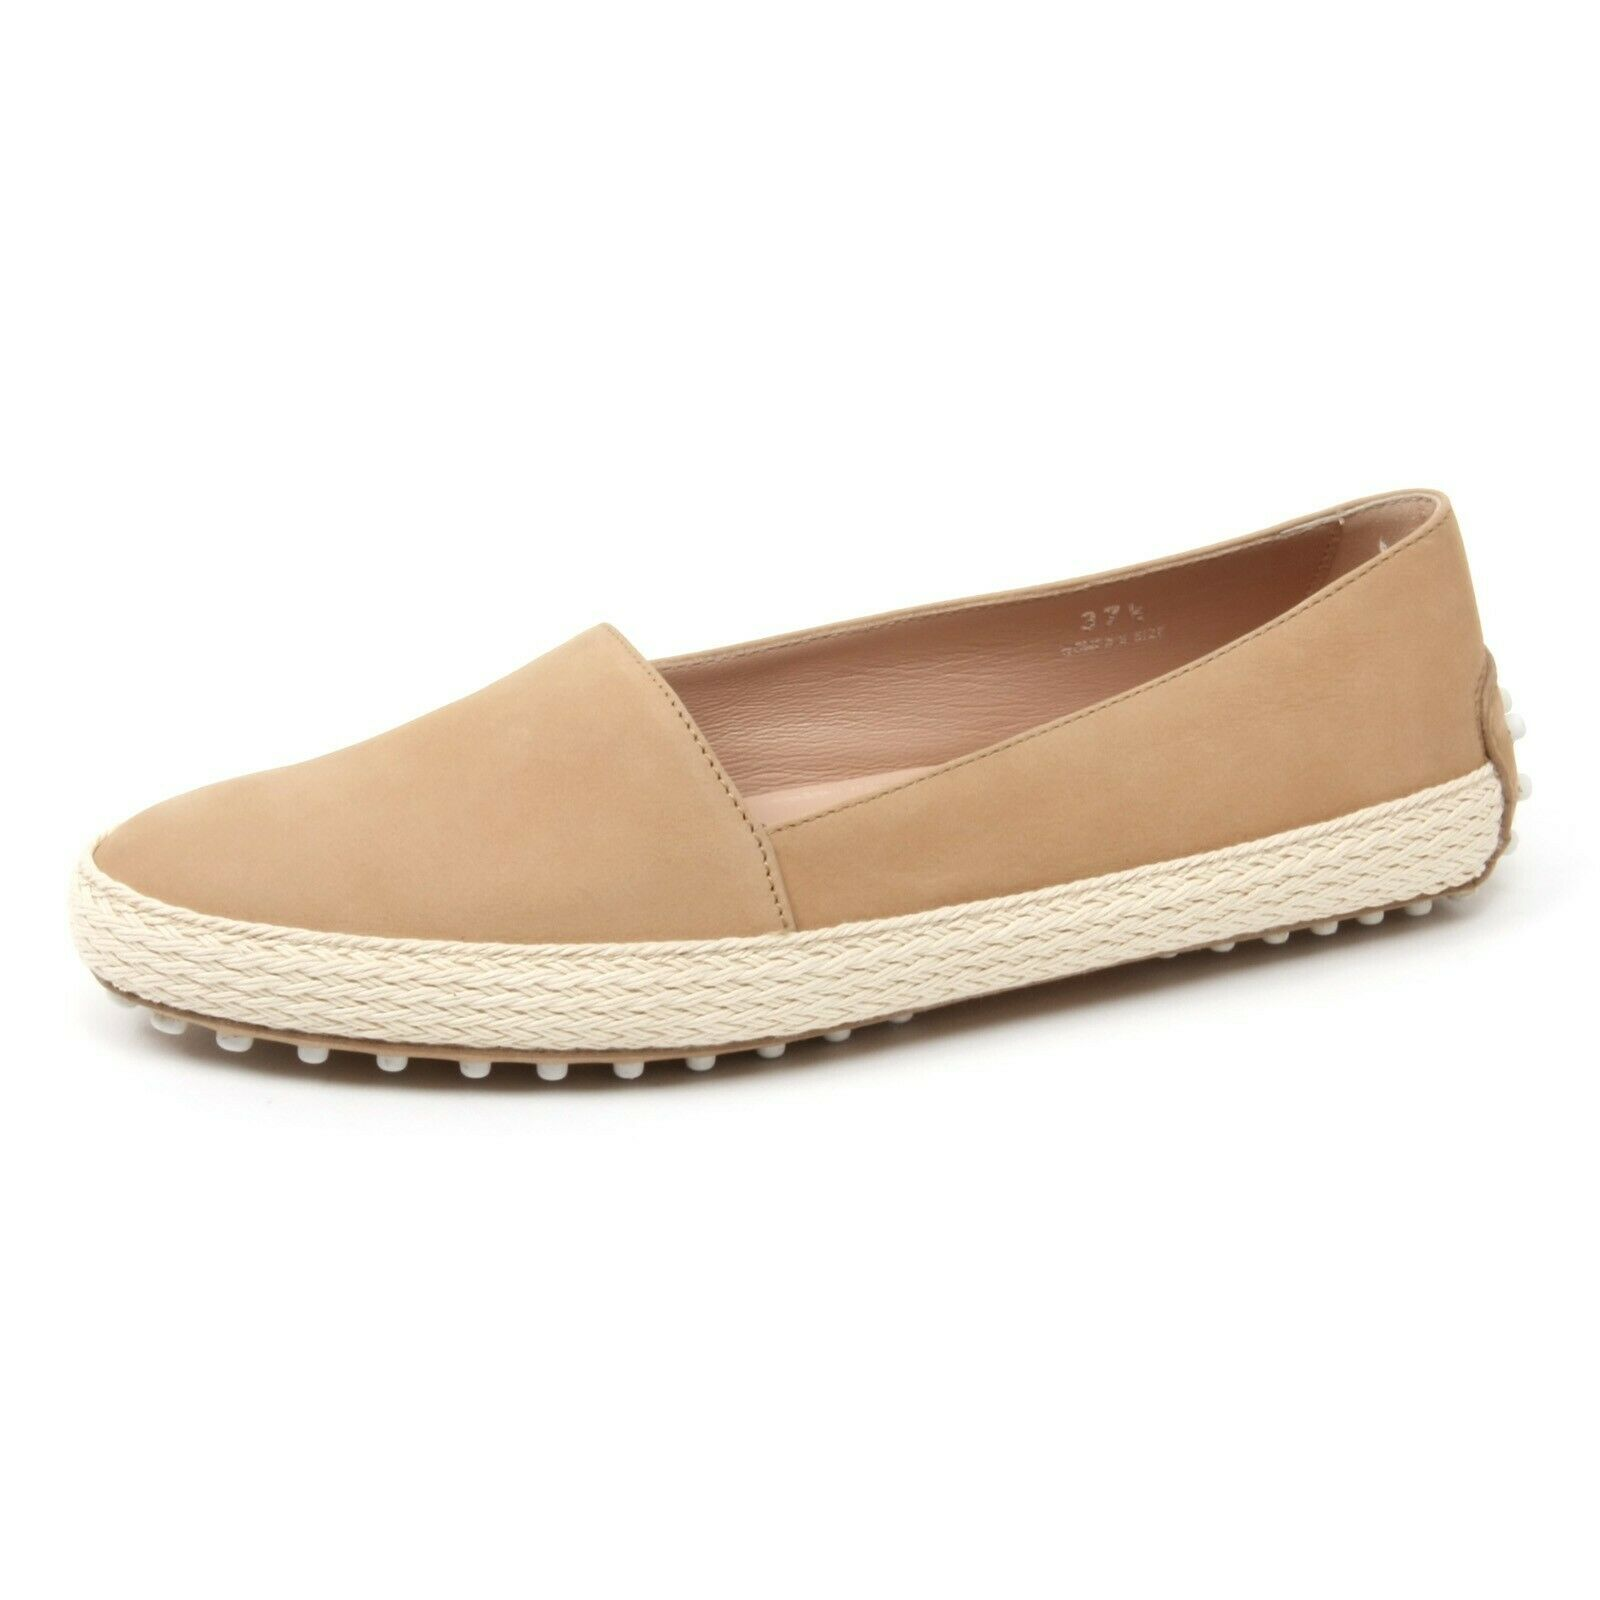 B4618 moccasin women TOD's shoes Slipper Beige Loafer shoes Woman